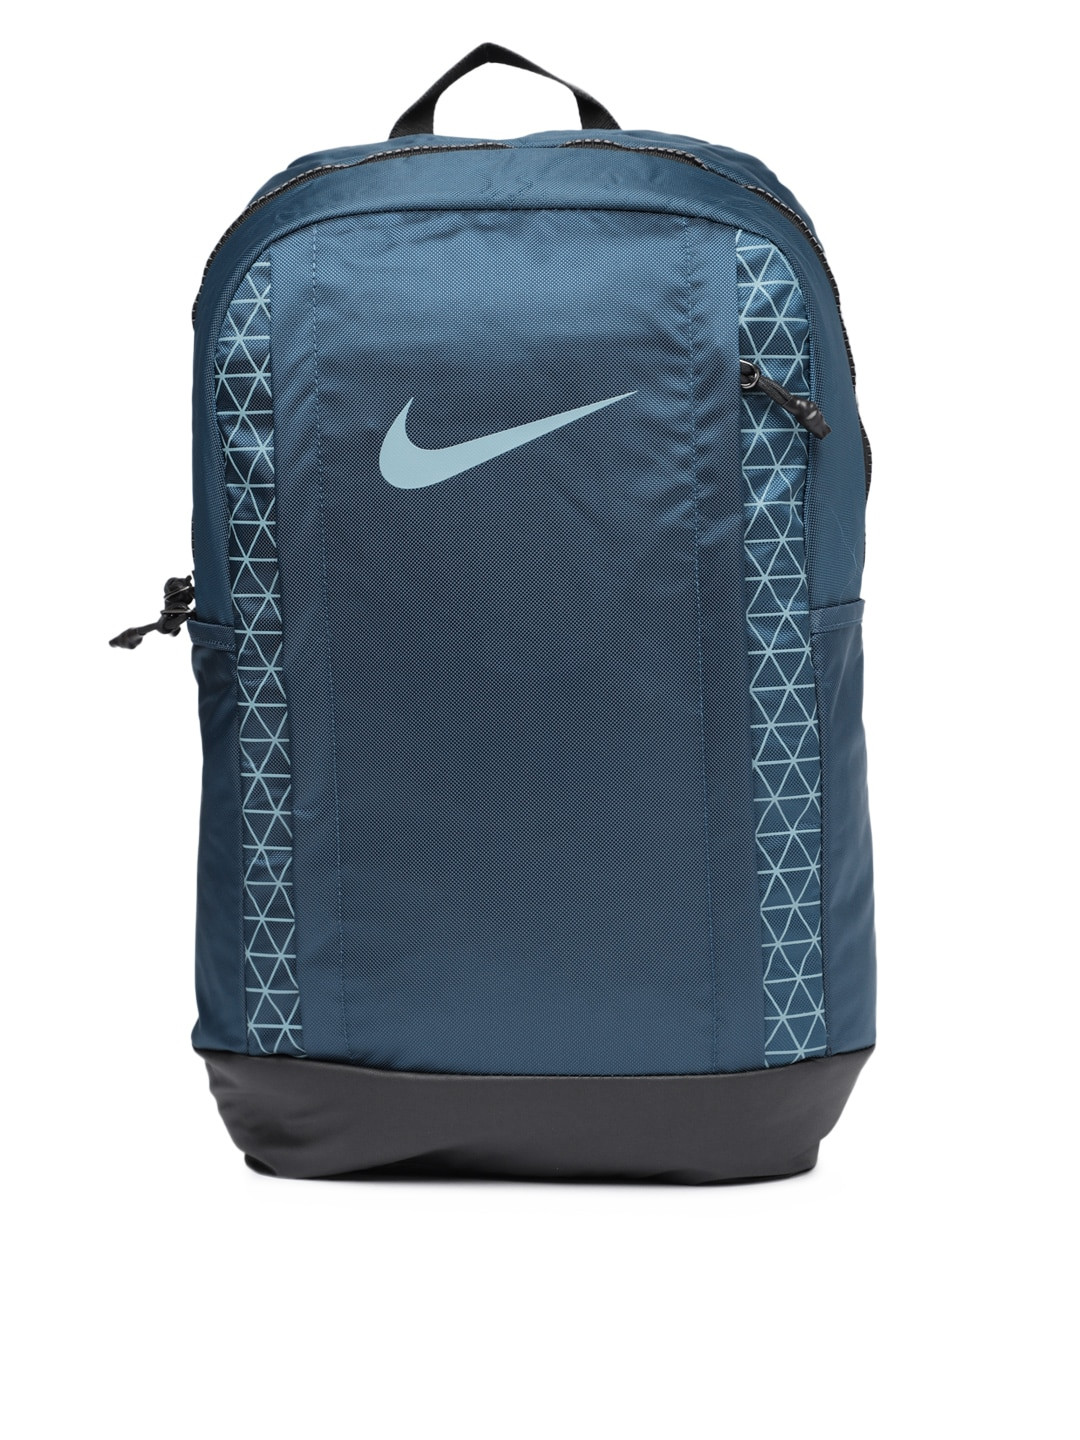 08880eff20 Nike Backpacks - Buy Original Nike Backpacks Online from Myntra